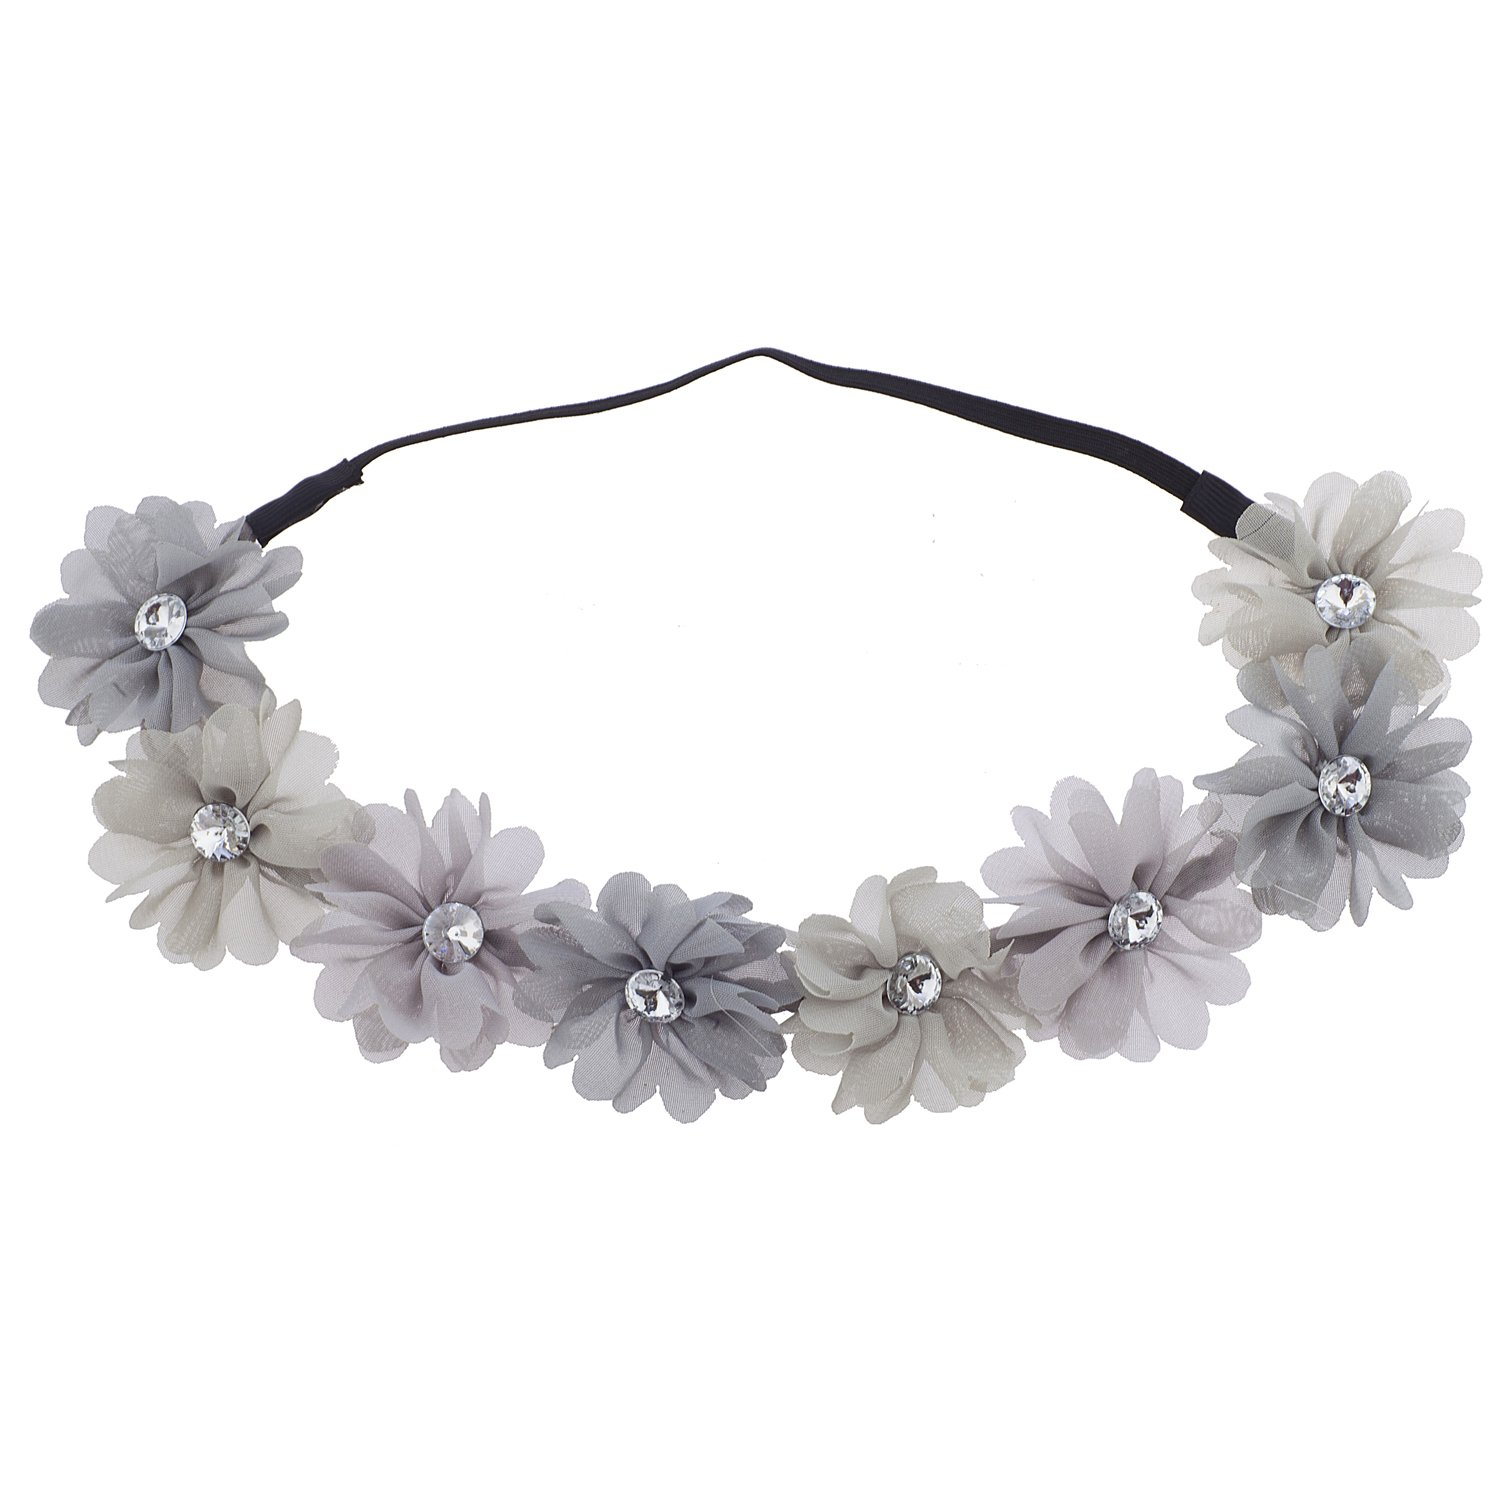 8e087897efa48 Amazon.com   Lux Accessories Multicolor Grey Rhinestone Flower Crown  Headband Headwrap   Beauty